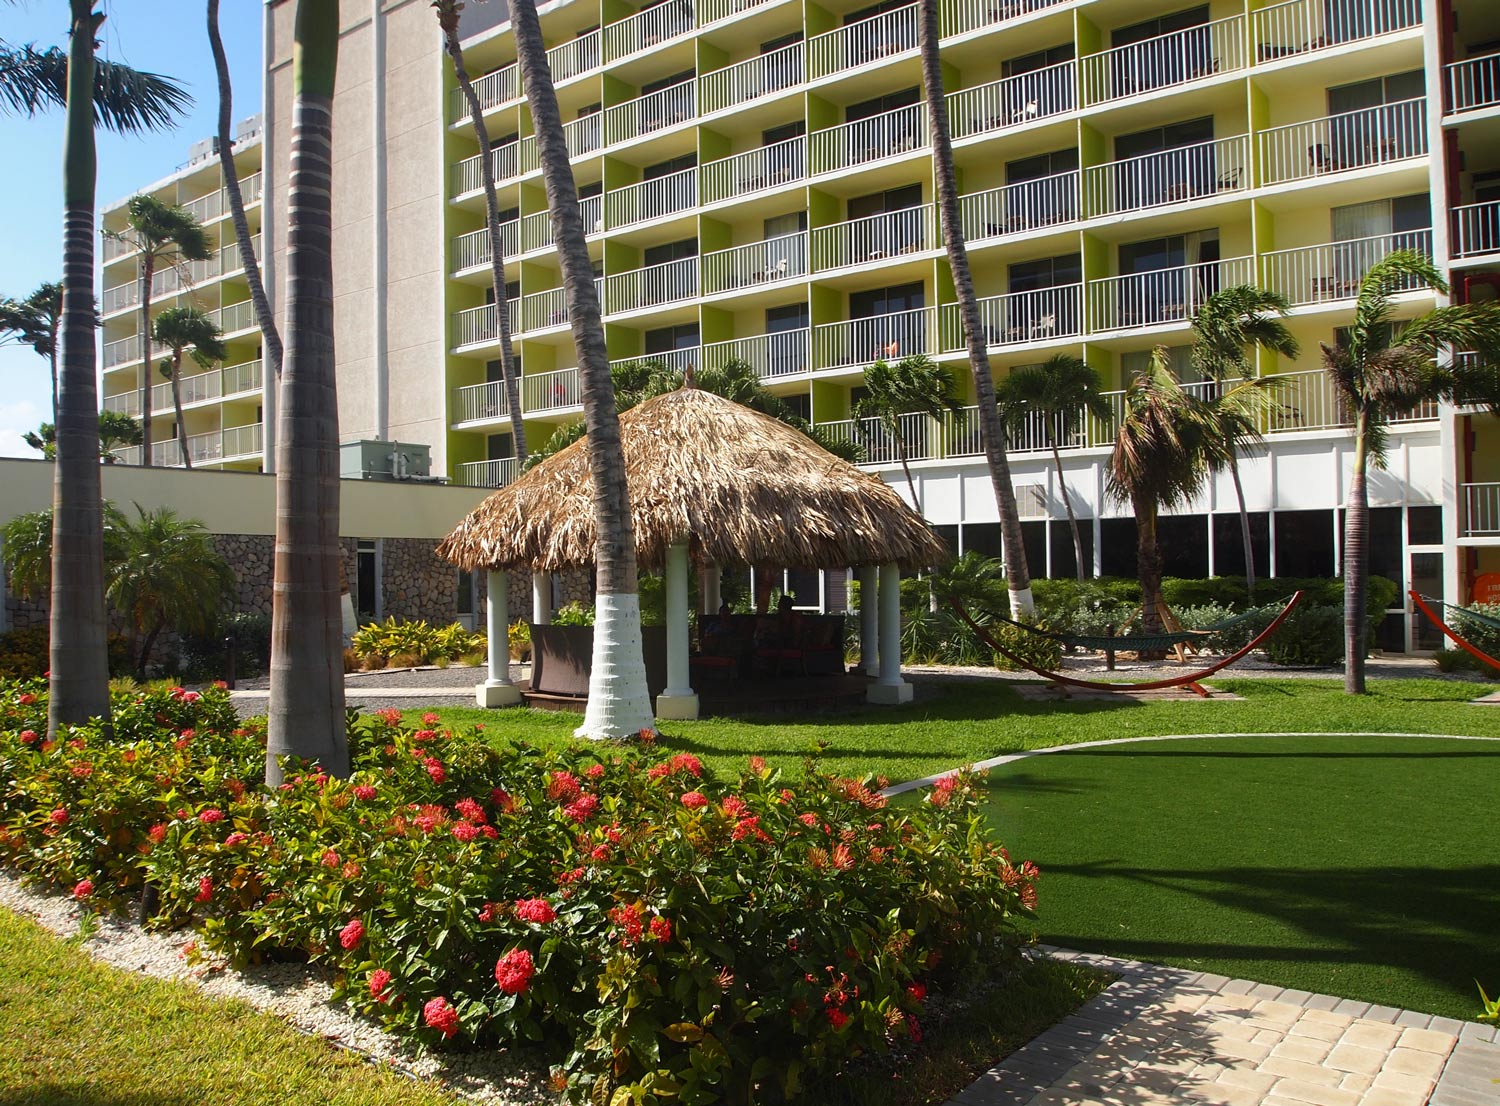 Holiday-Inn-Aruba-balconies-rooms.jpg